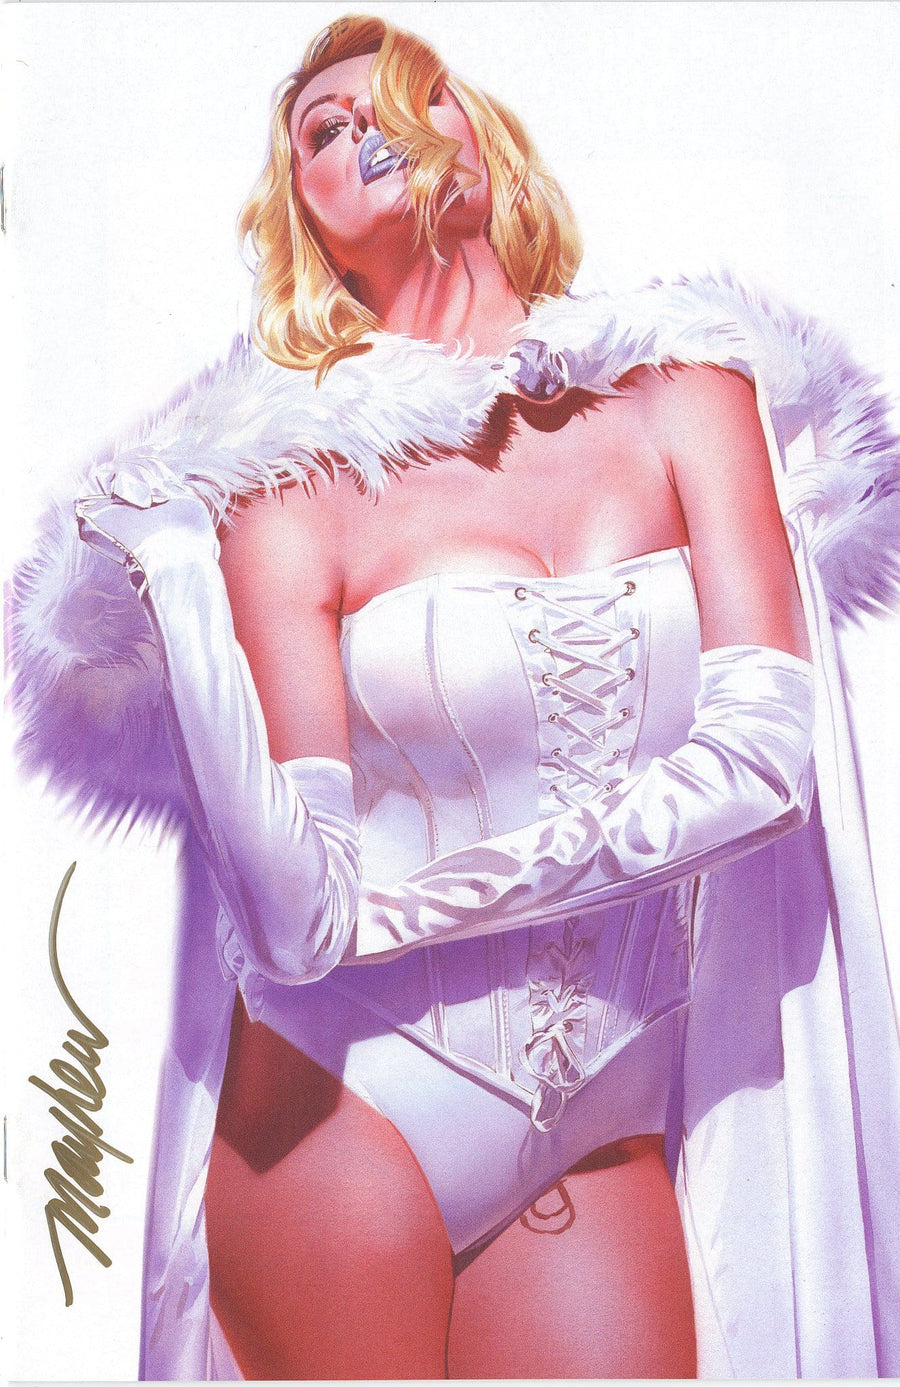 MARAUDERS #4 Mike Mayhew White Queen Trade Dress & Virgin Variant Signed